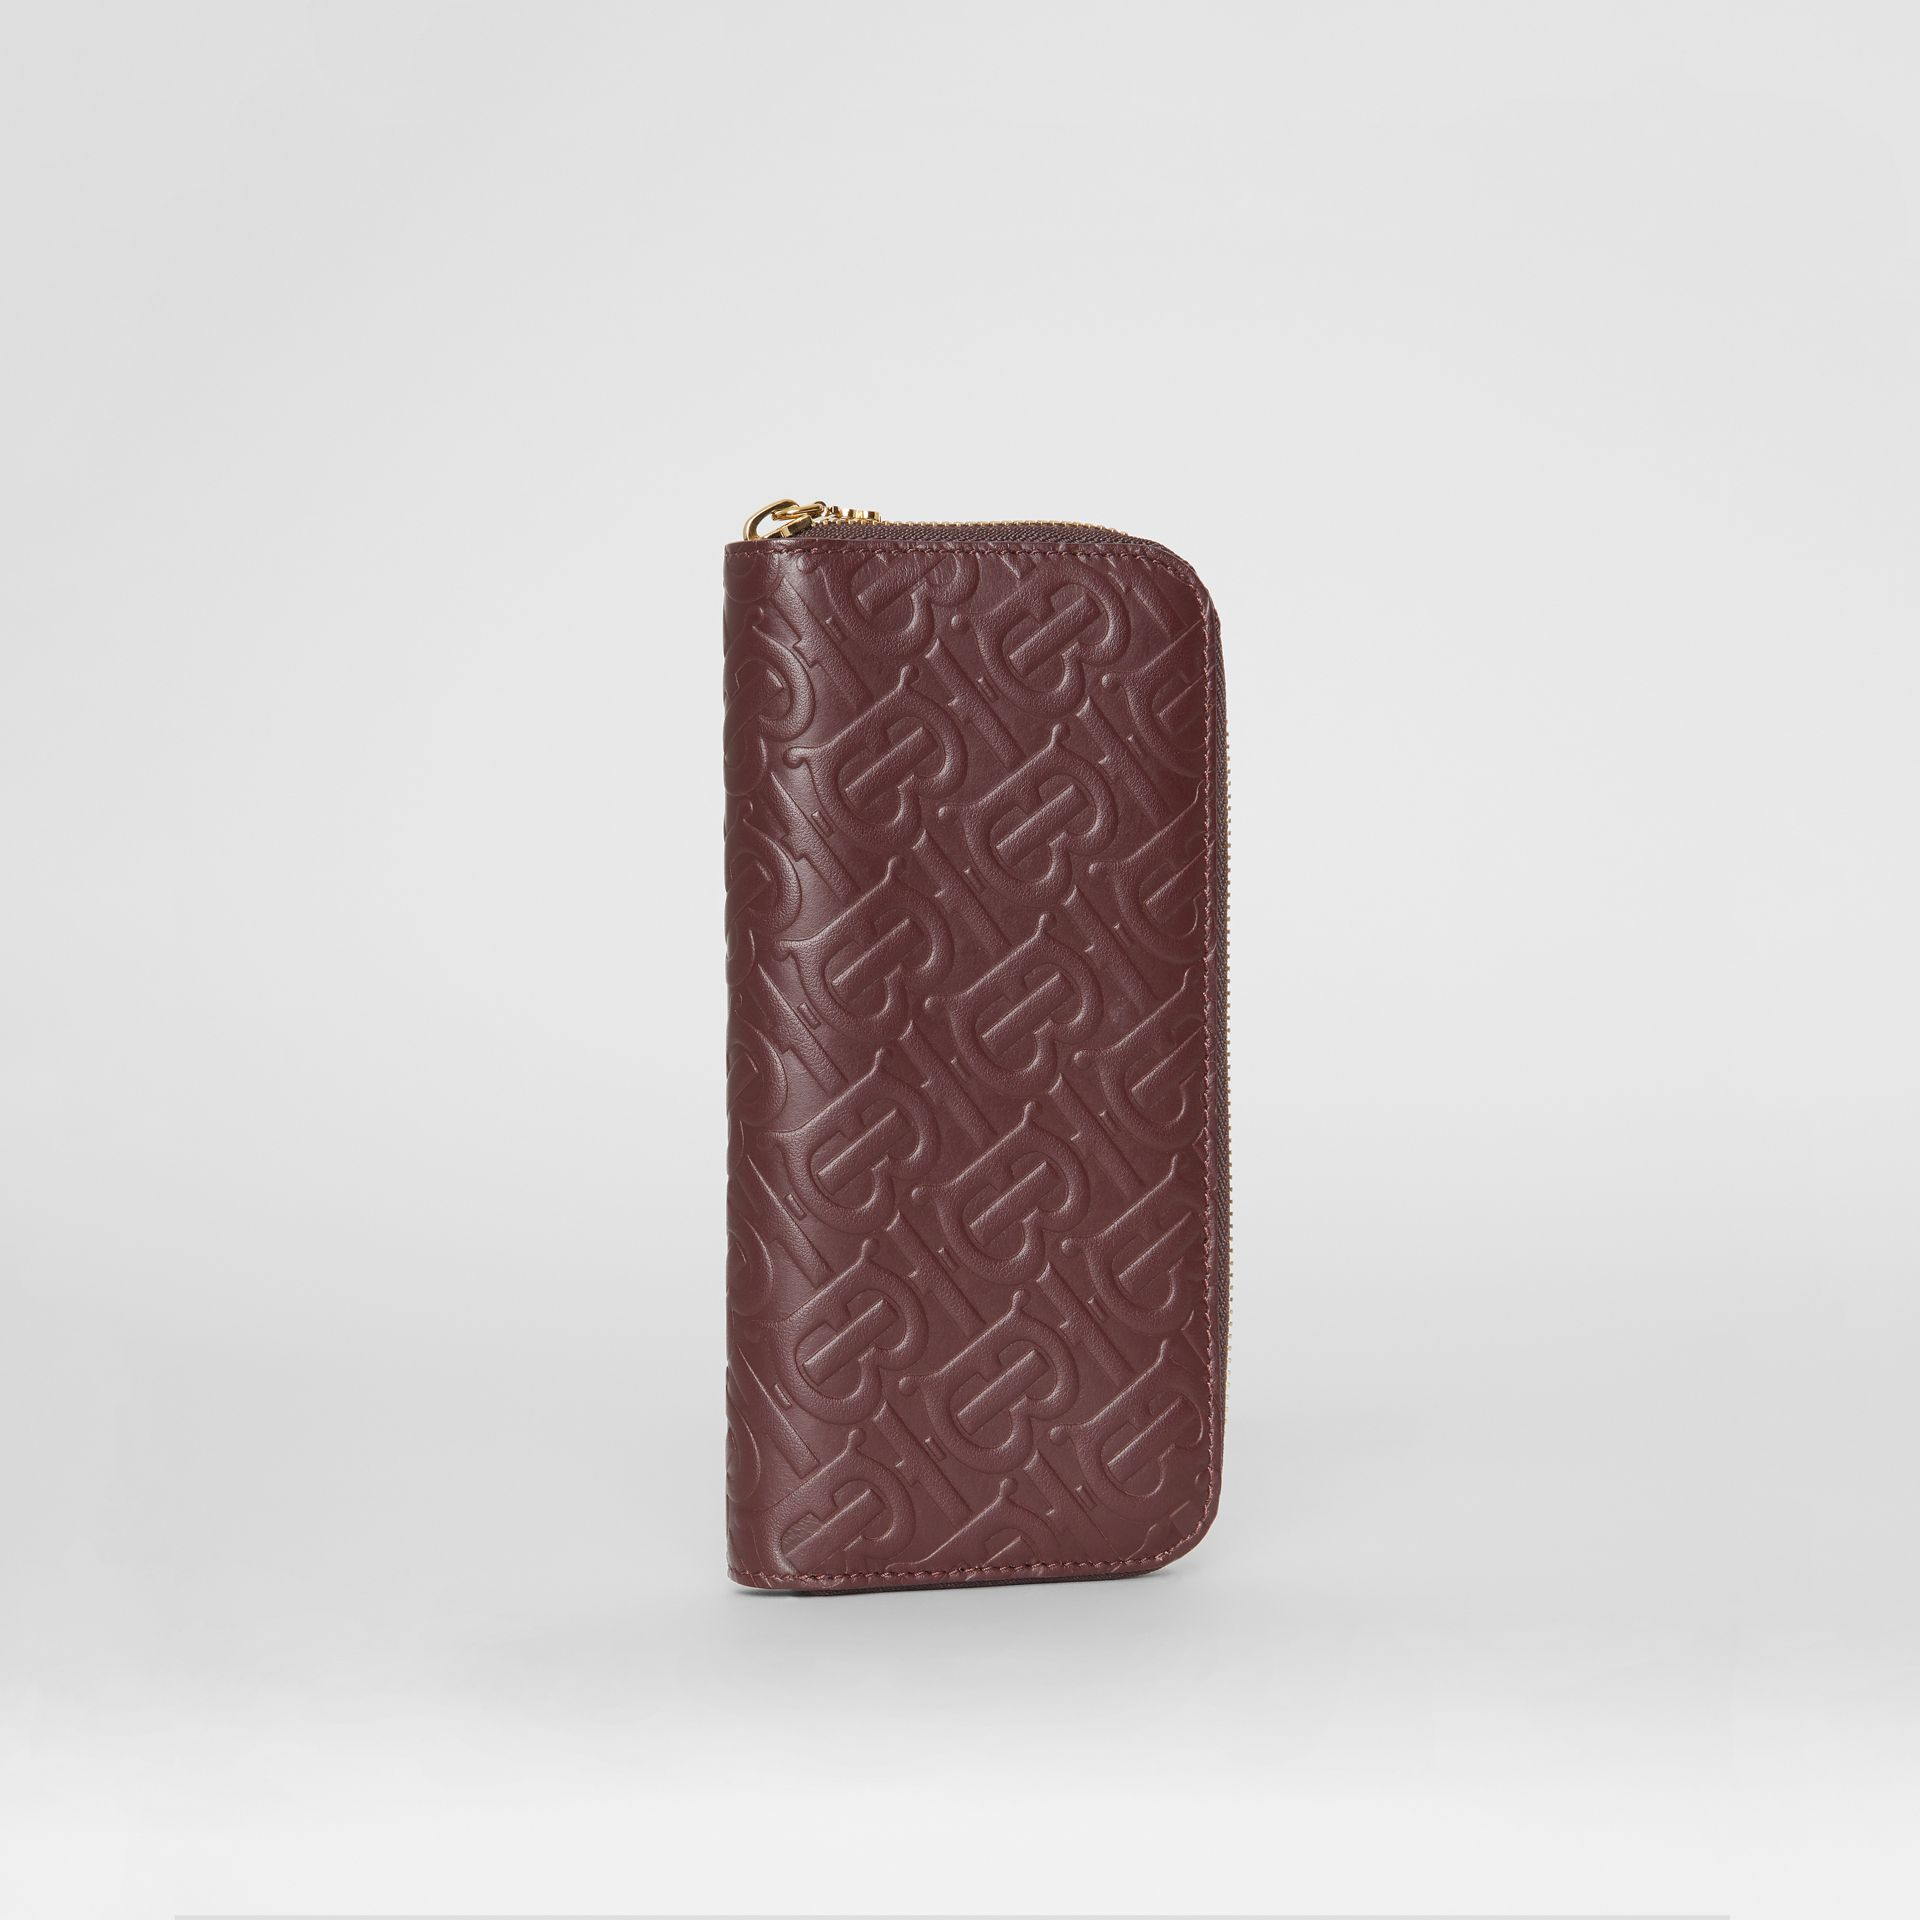 Monogram Leather Ziparound Wallet in Oxblood - Women | Burberry - gallery image 3